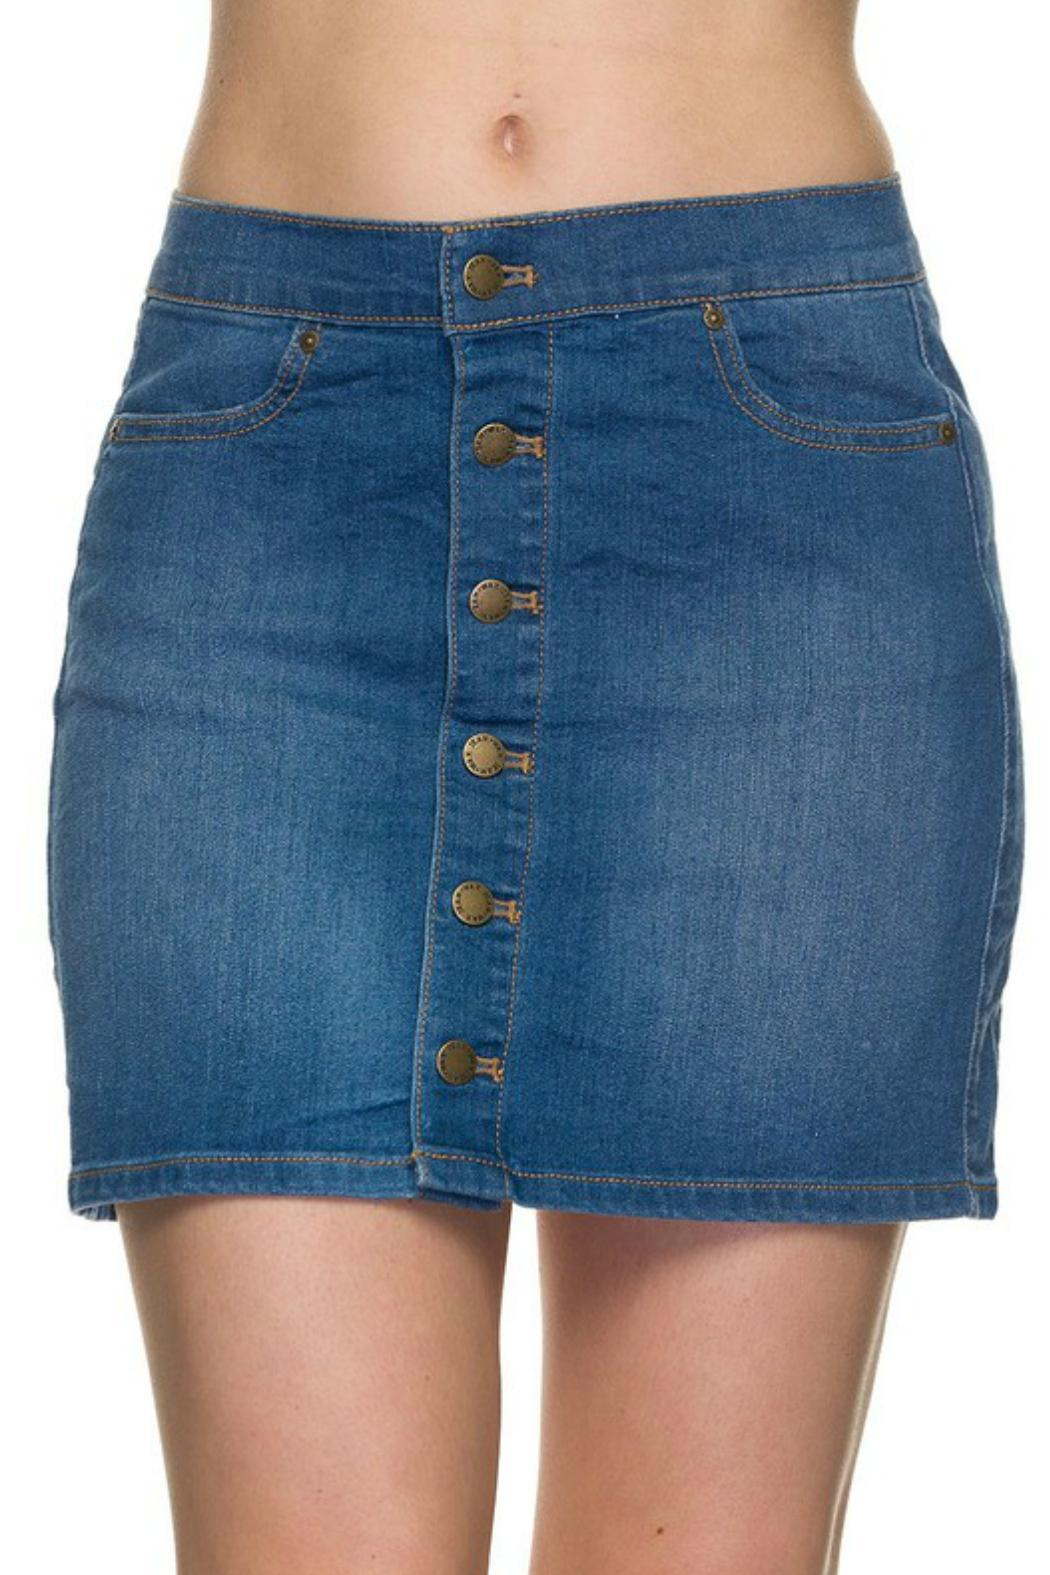 How to Make a Denim Skirt From Recycled Jeans